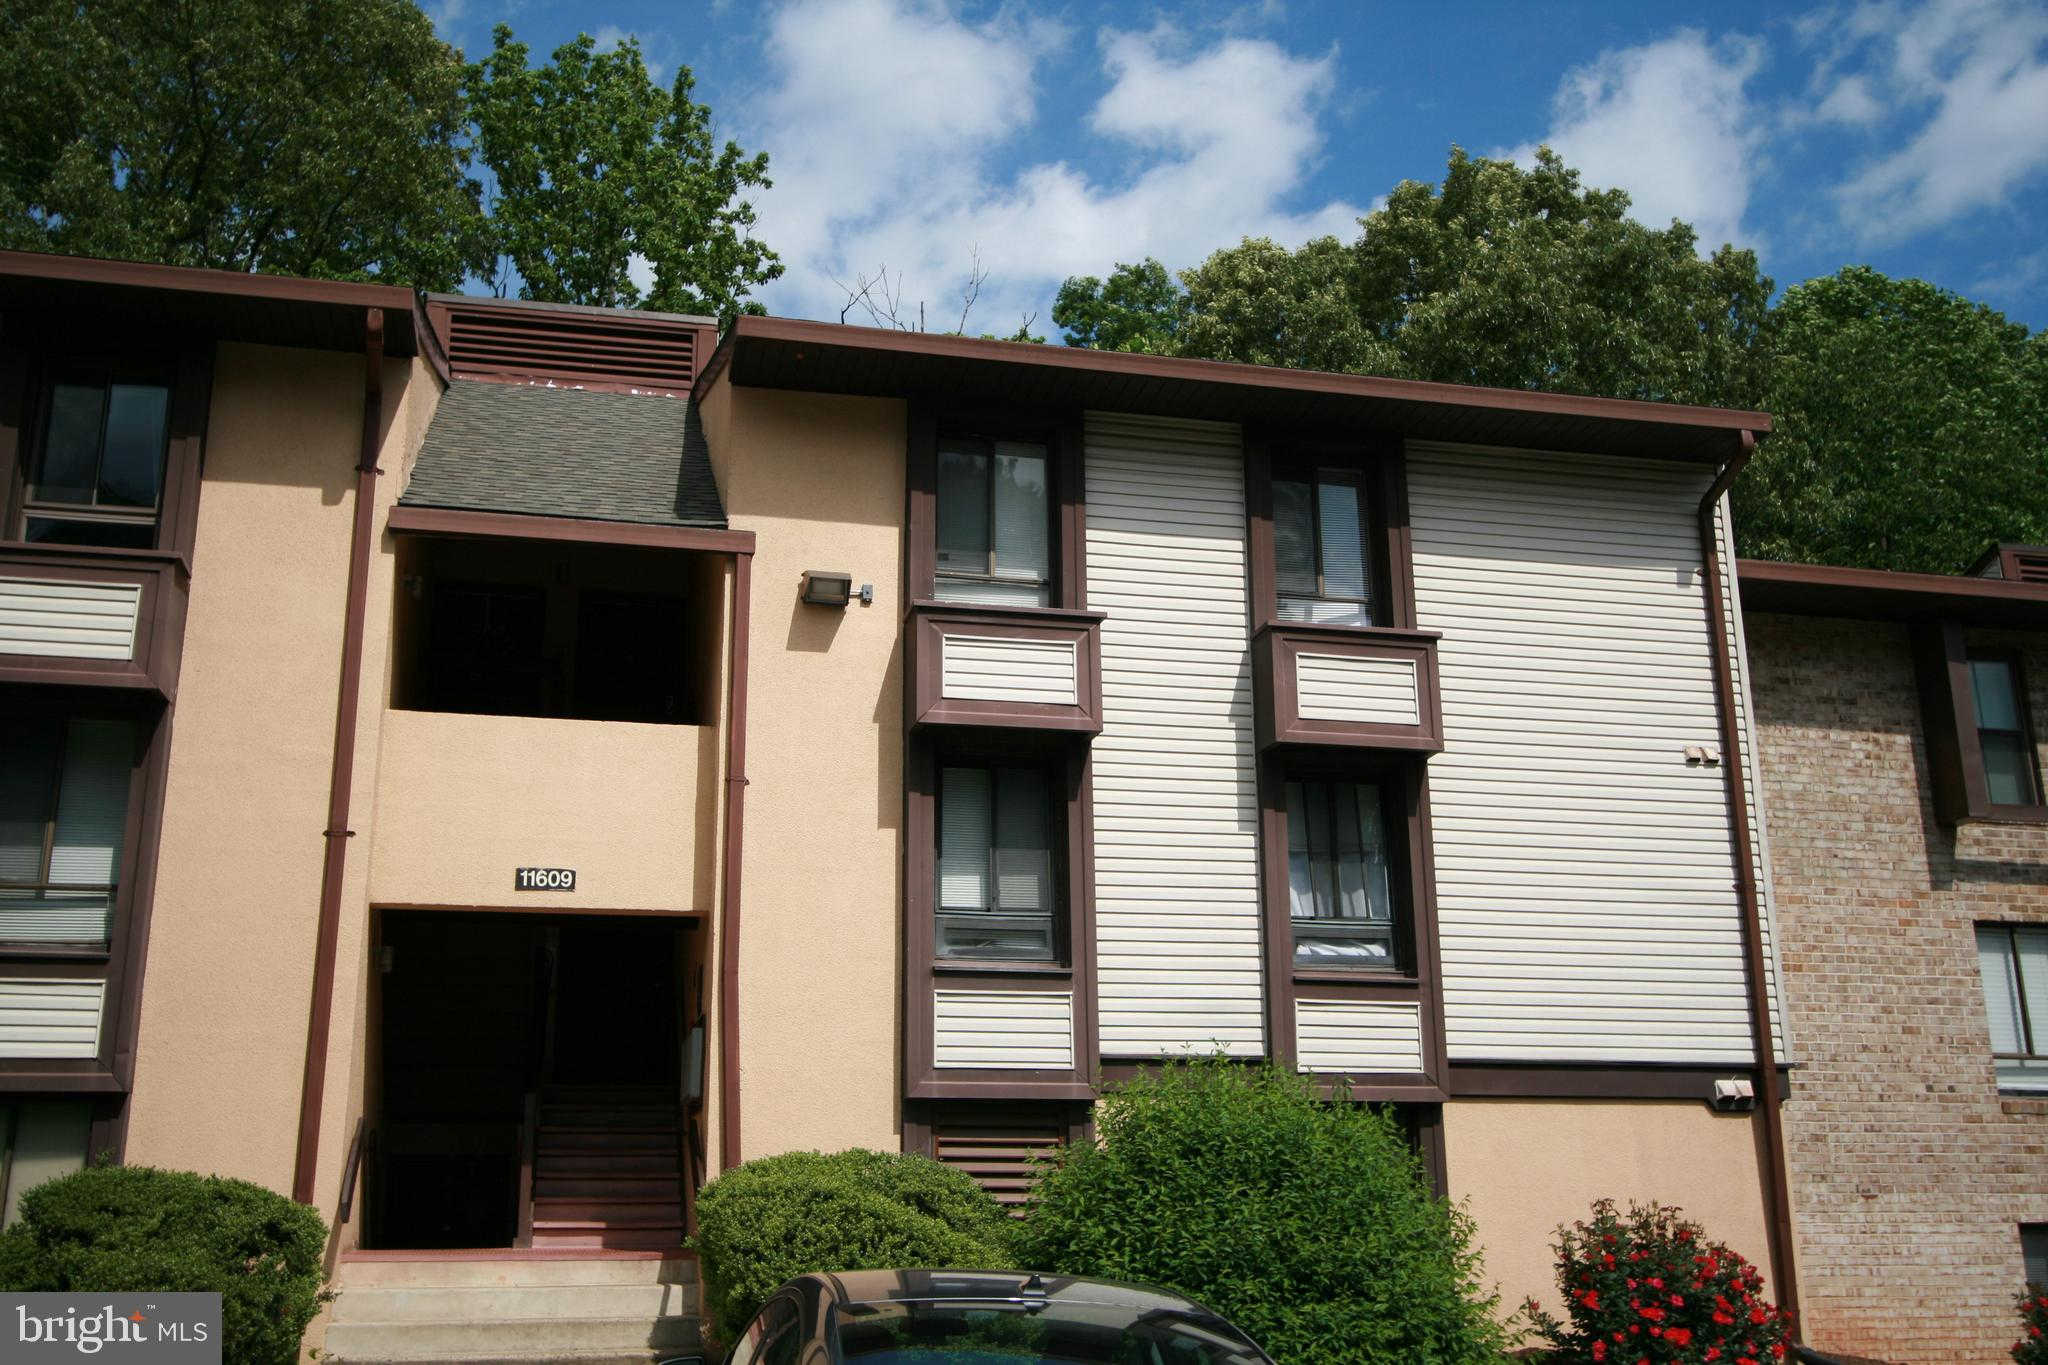 Another Property Rented - 11609 Stoneview Square #2B, Reston, VA 20191